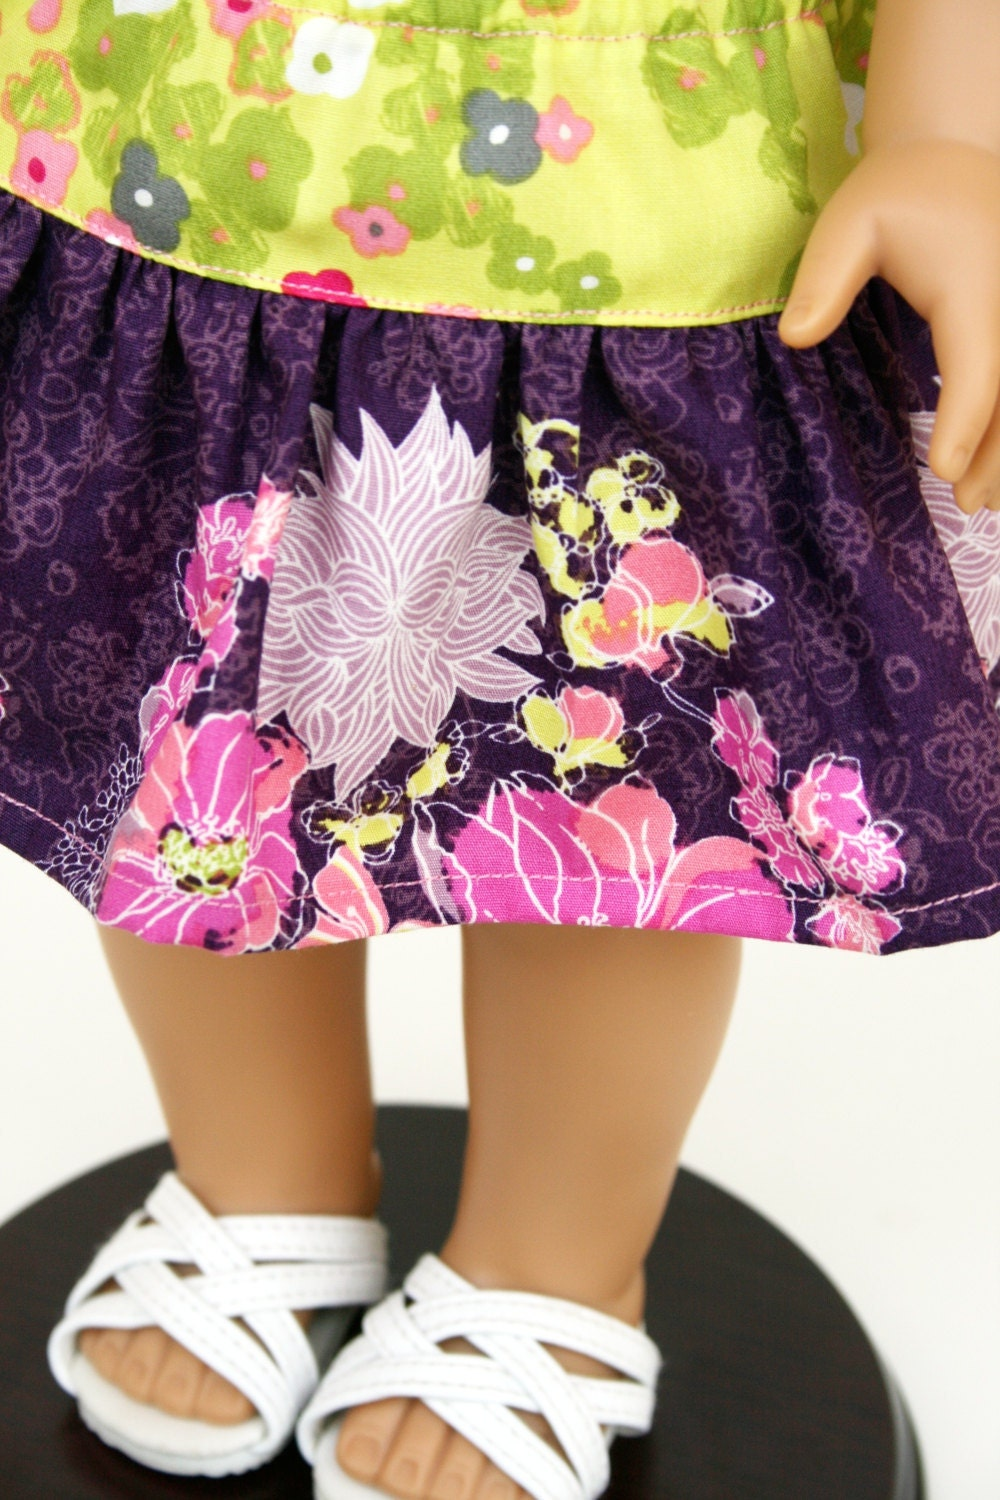 American Girl Doll Clothes - The Rose Ballad Collection, A Yoke Skirt in Serenade Moonlight